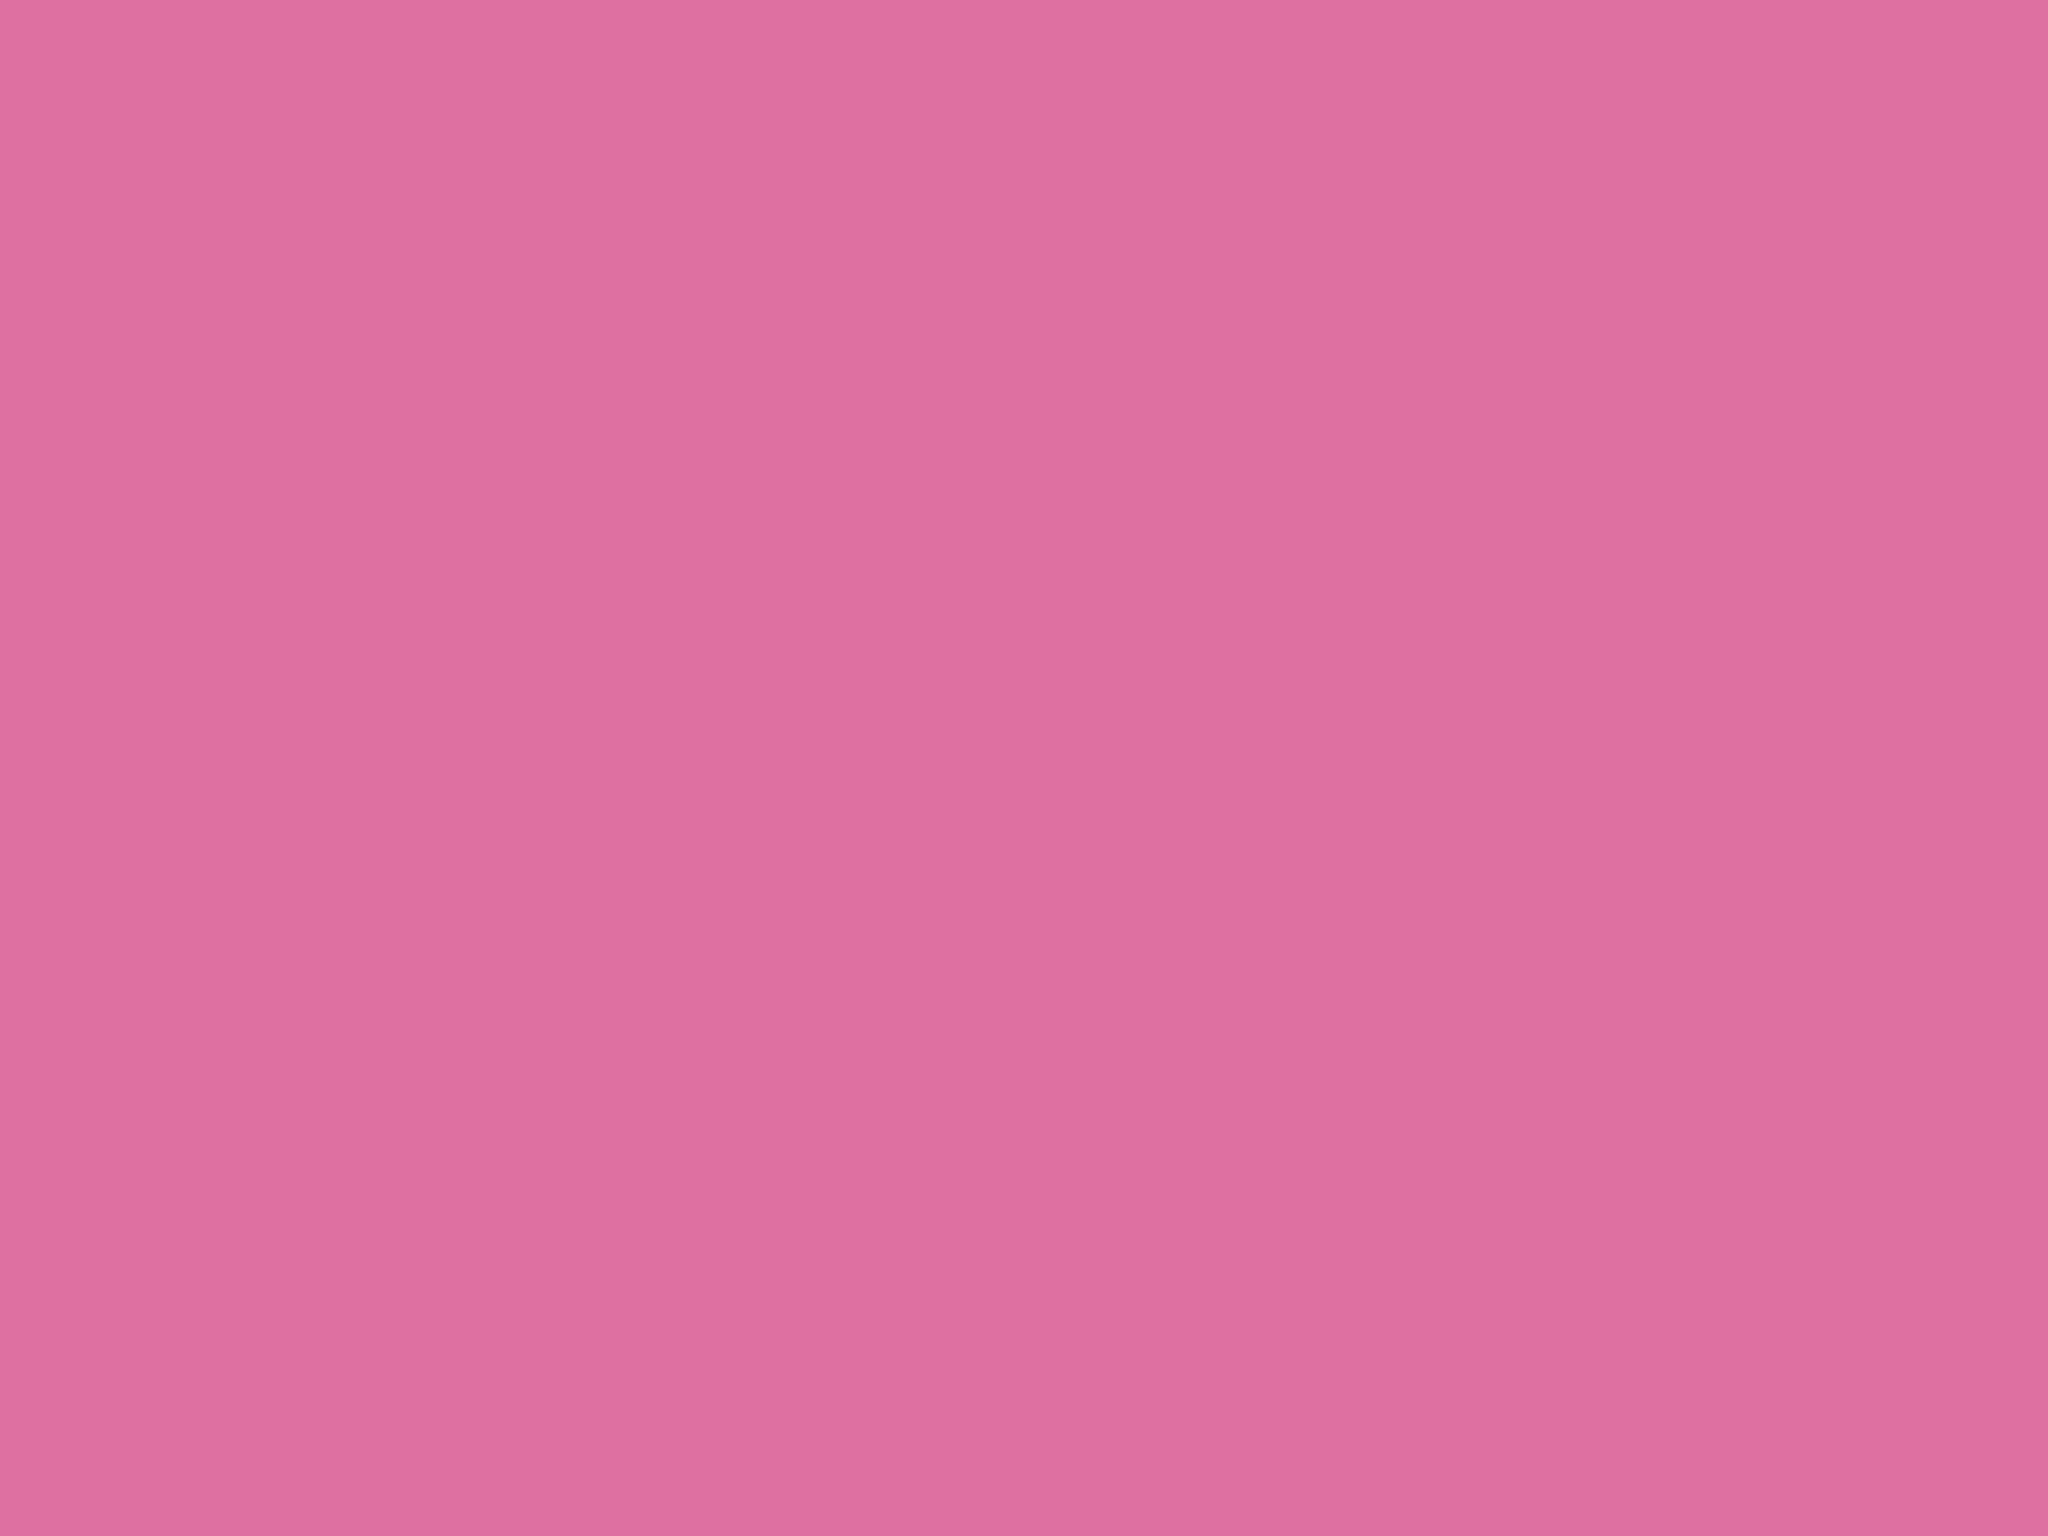 2048x1536 Thulian Pink Solid Color Background